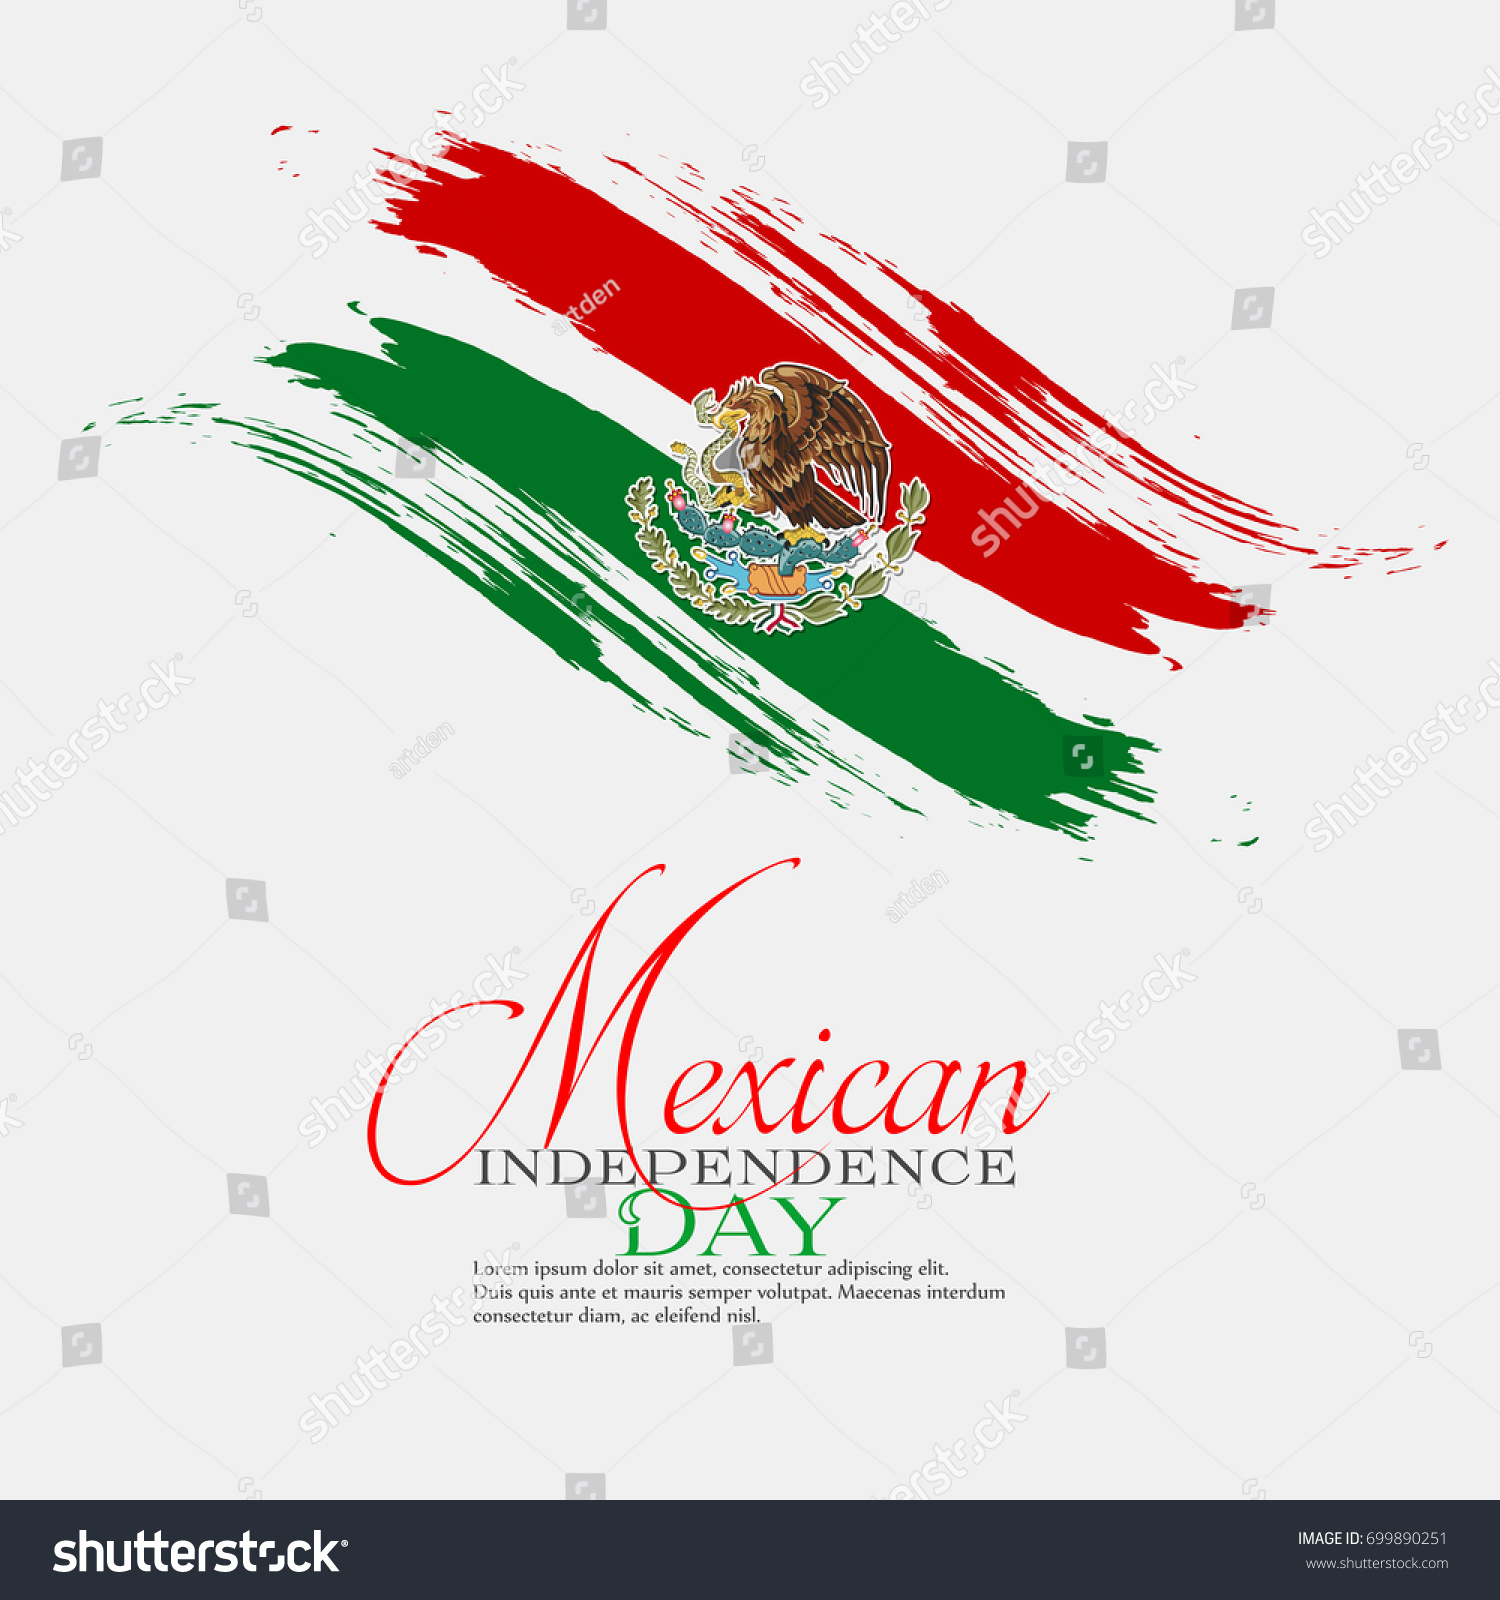 nice beautiful abstract mexican independence day stock vector